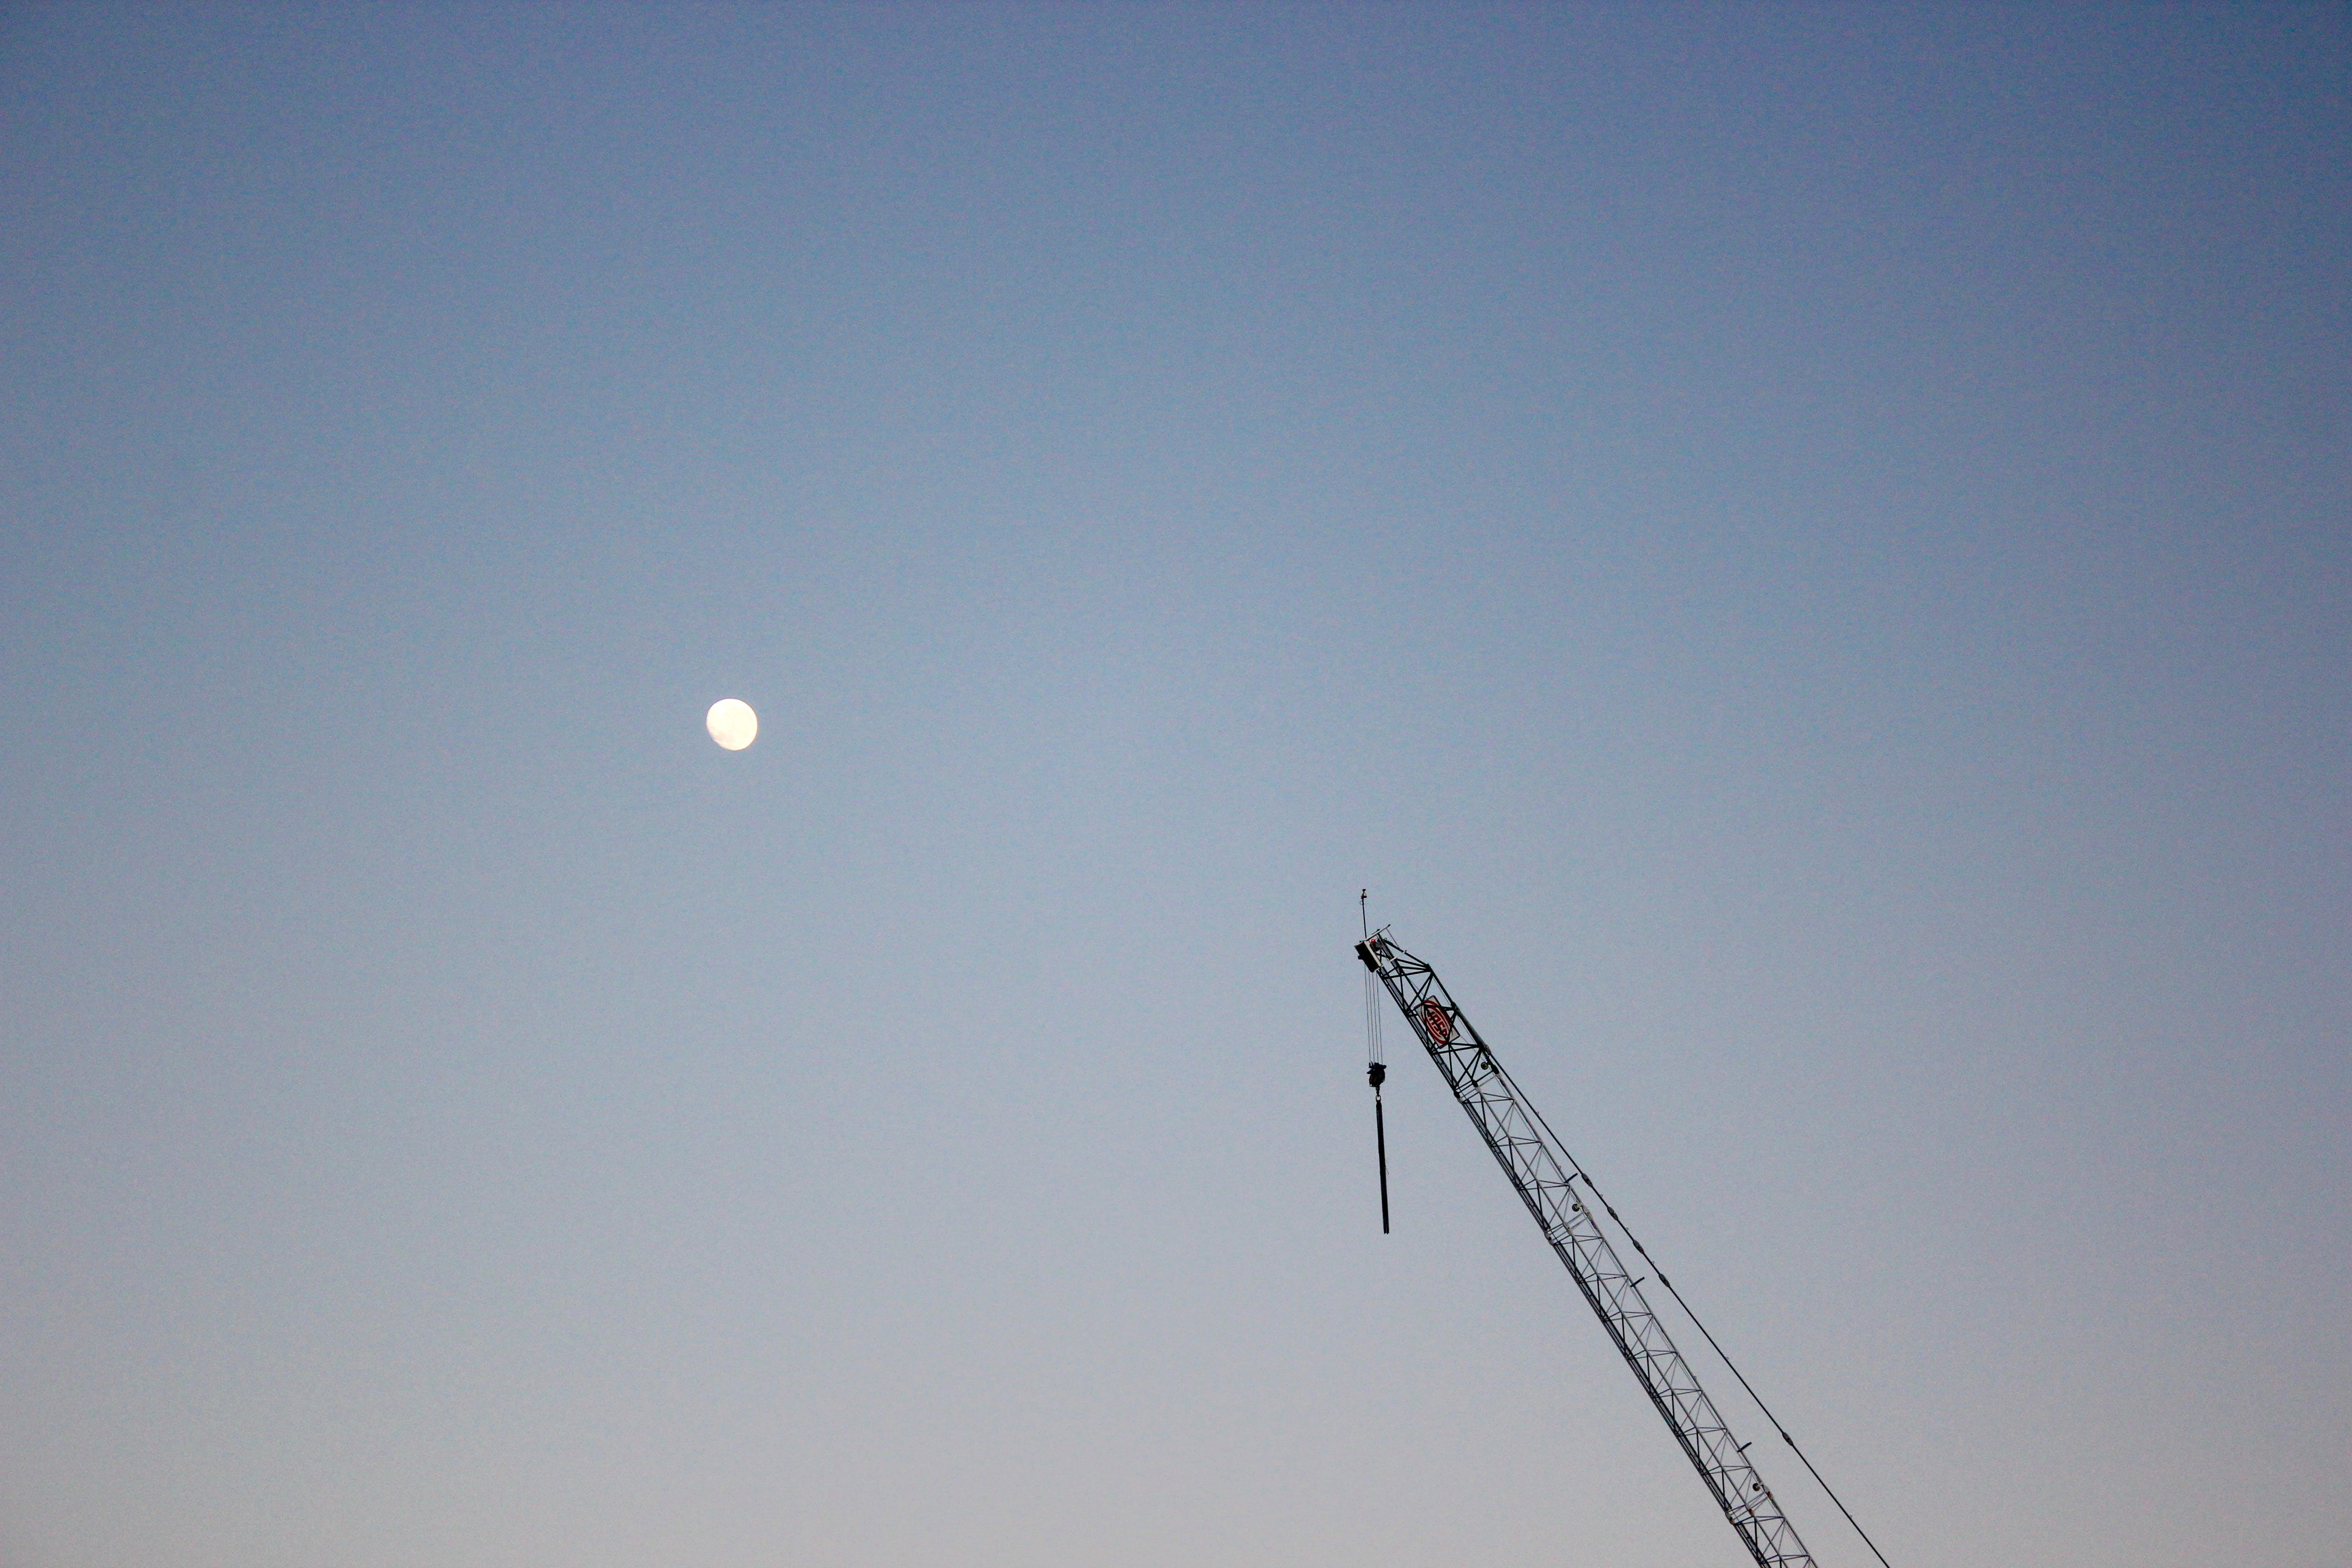 Free stock photo of crane, desktop wallpaper, full moon, minimalism